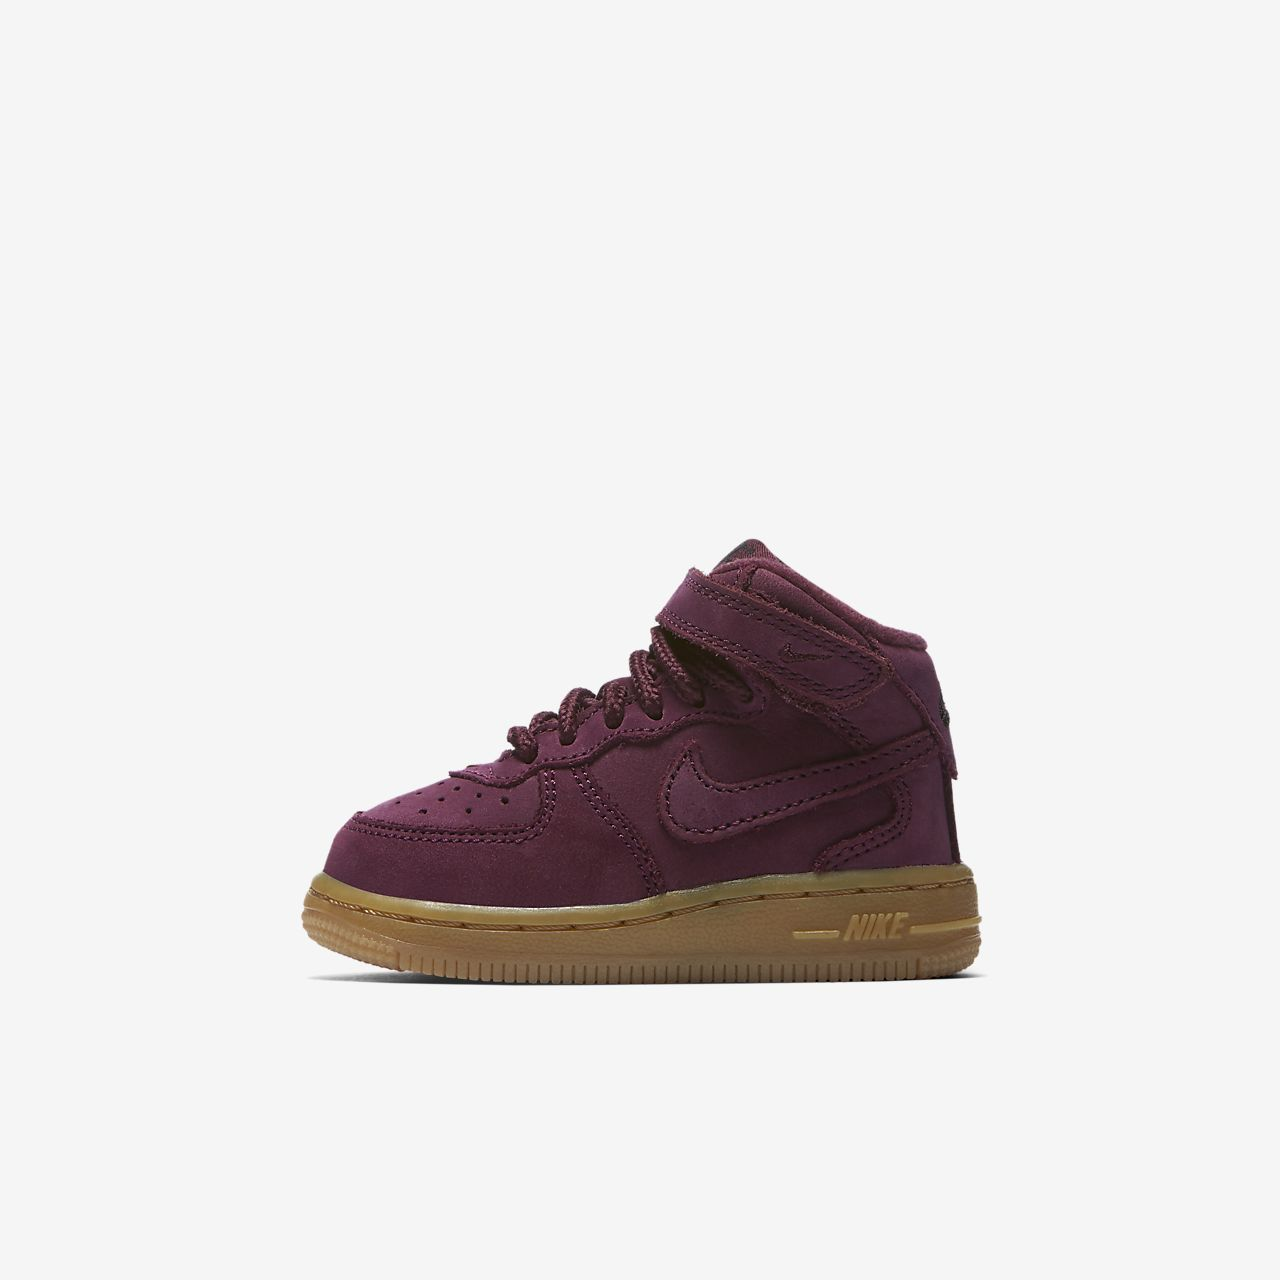 ... Nike Air Force 1 Mid WB Infant/Toddler Shoe